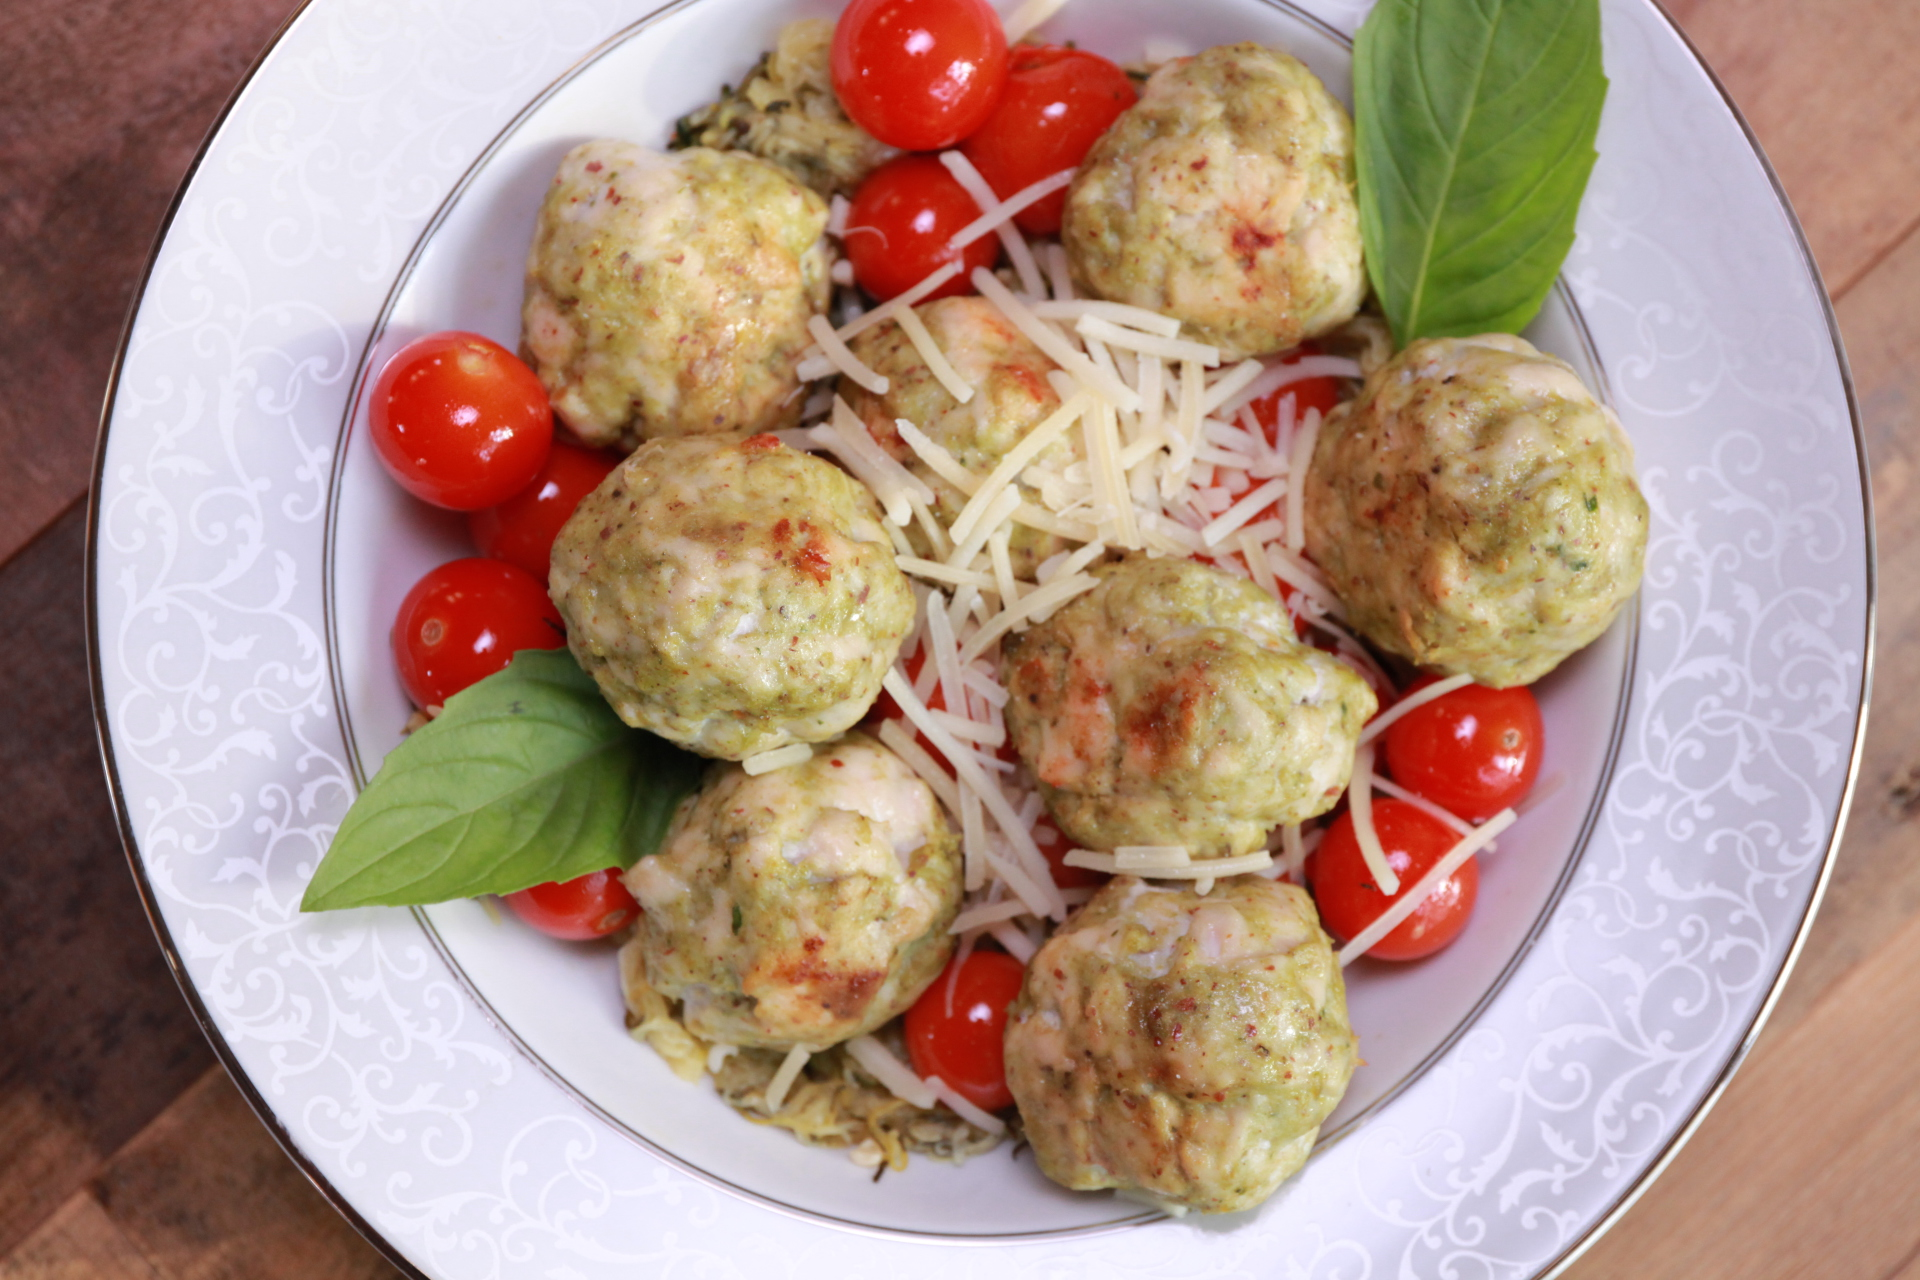 A healthy dinner idea for you that is a gluten-free recipe!